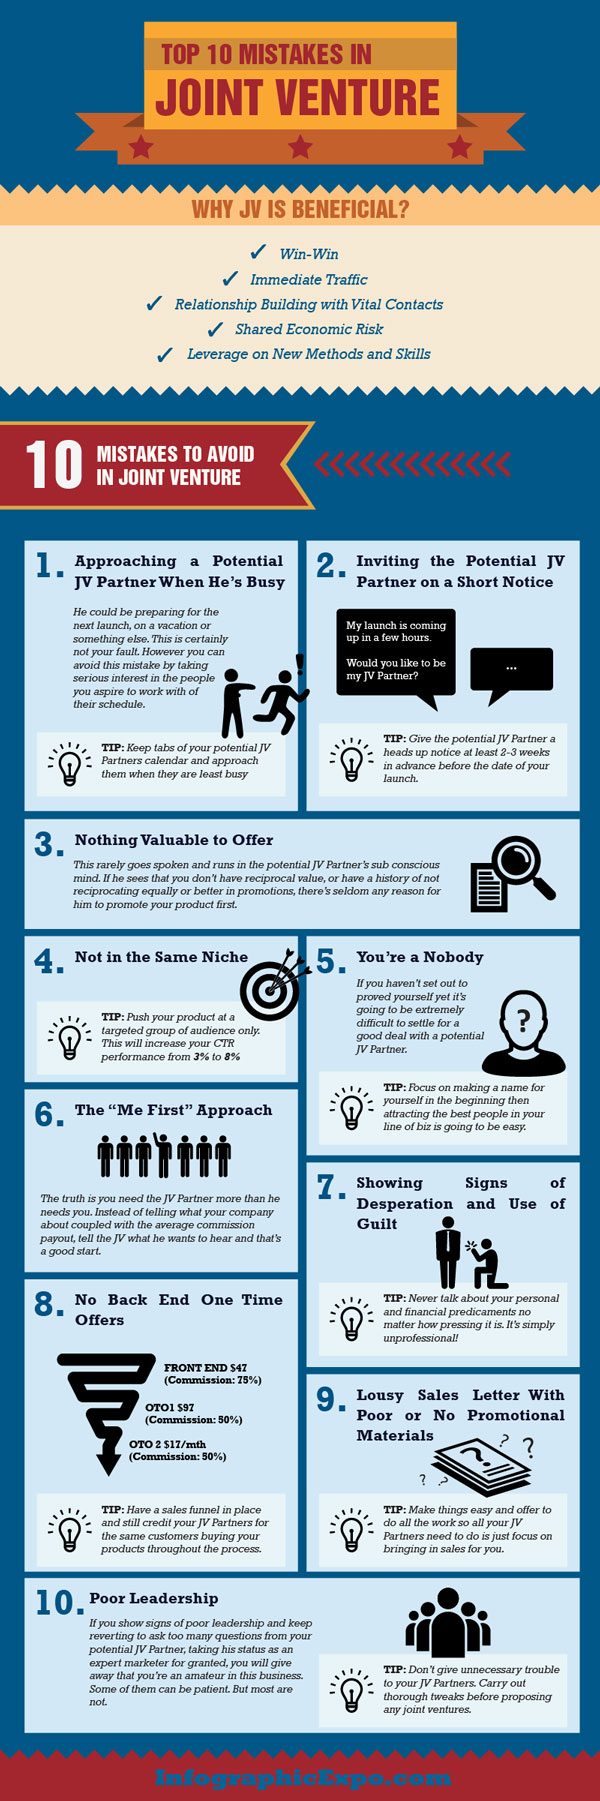 Top 10 Mistakes in Joint Ventures